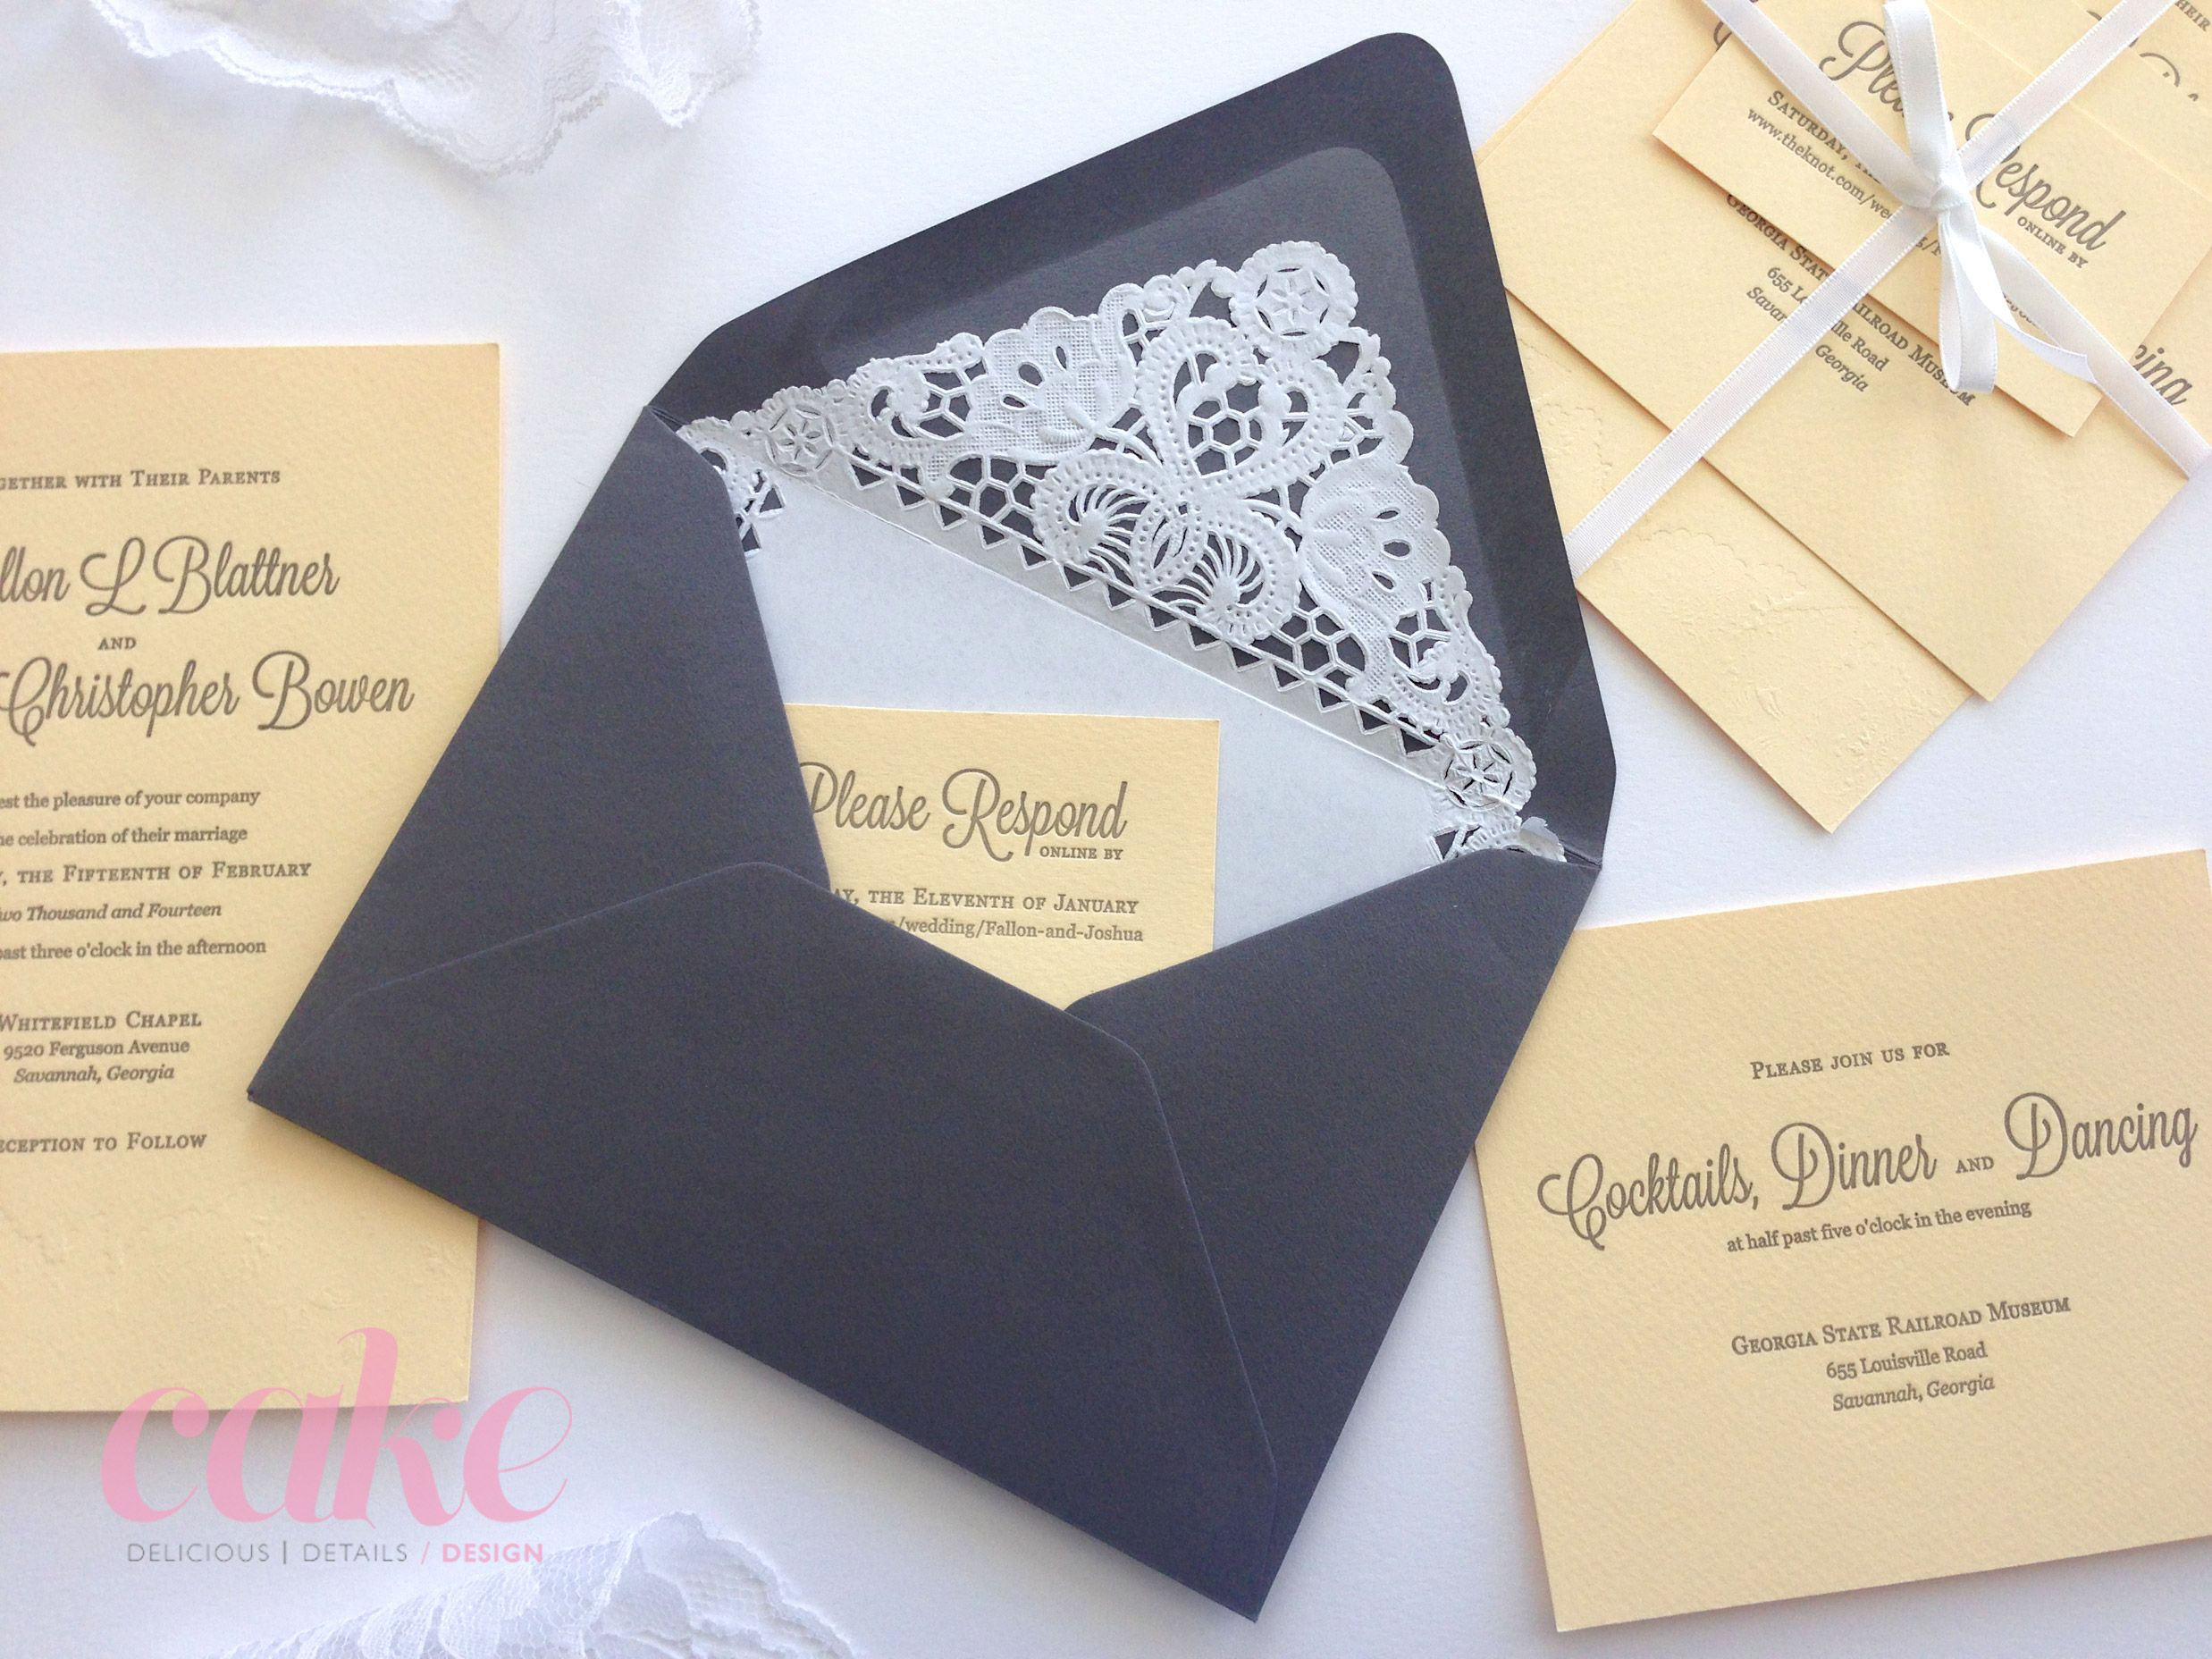 Invitation suites were tied with white satin ribbon and tucked into